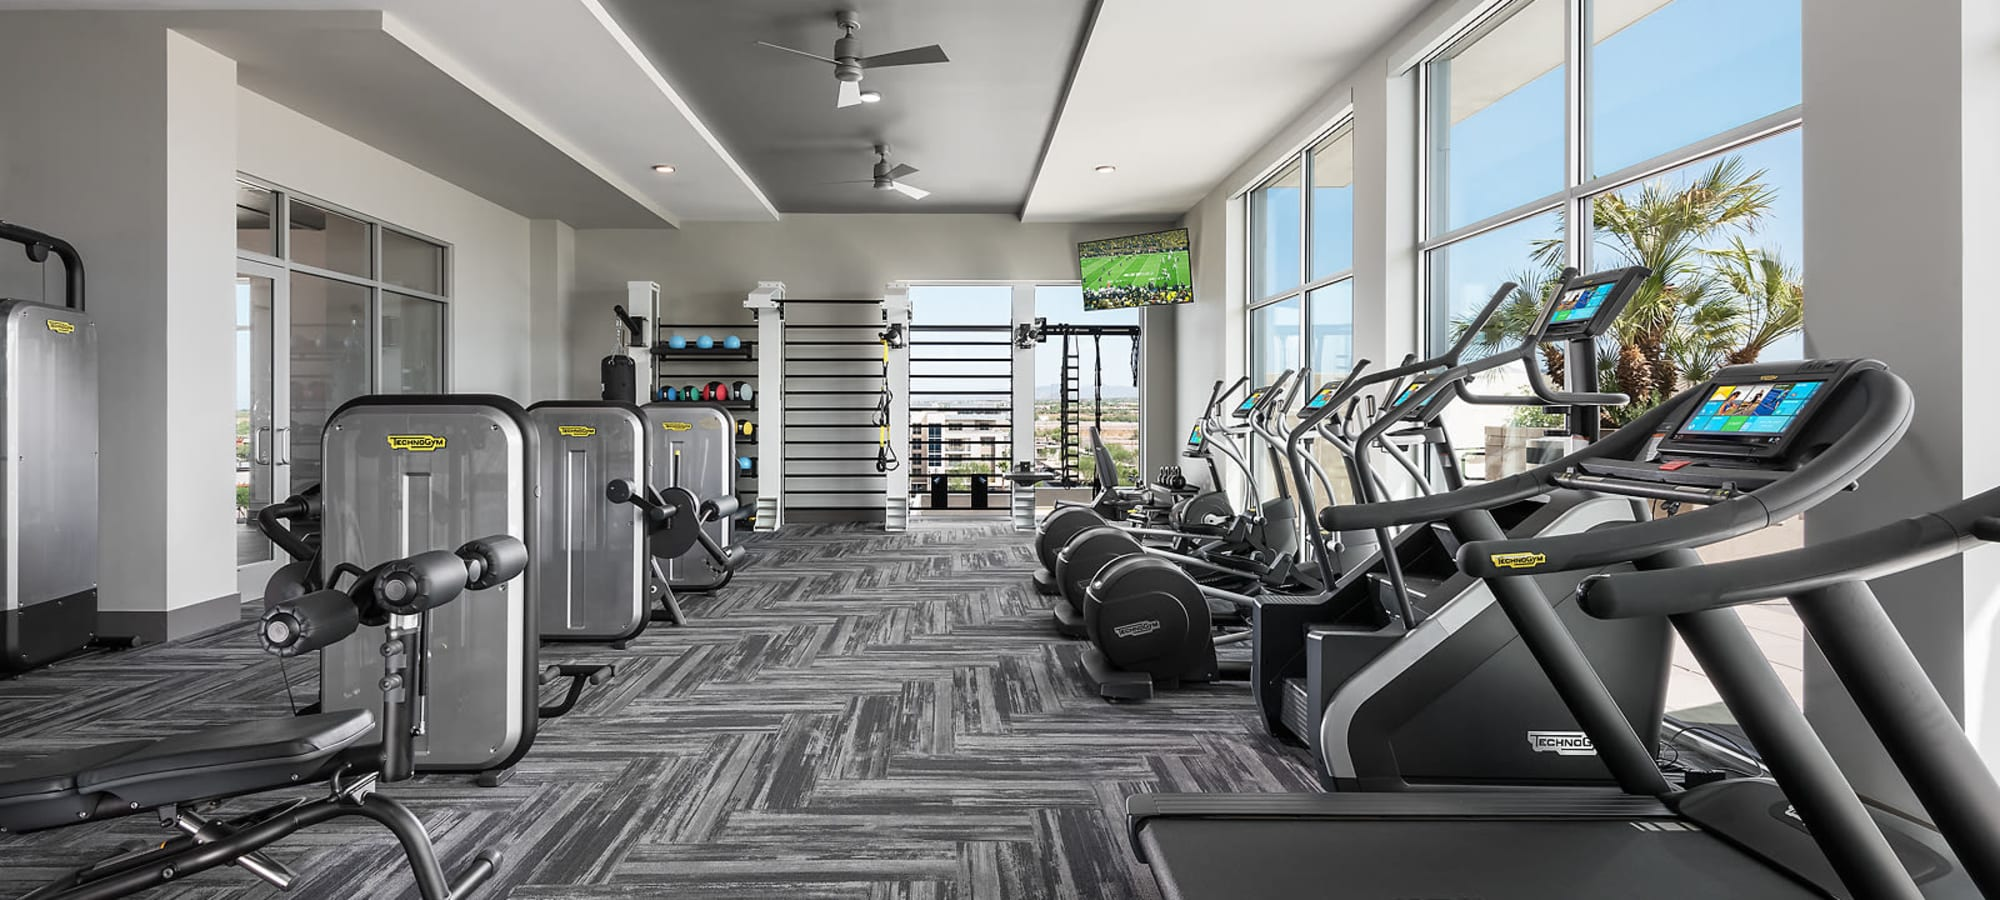 Beautiful bright gym area at The Halsten at Chauncey Lane in Scottsdale, Arizona